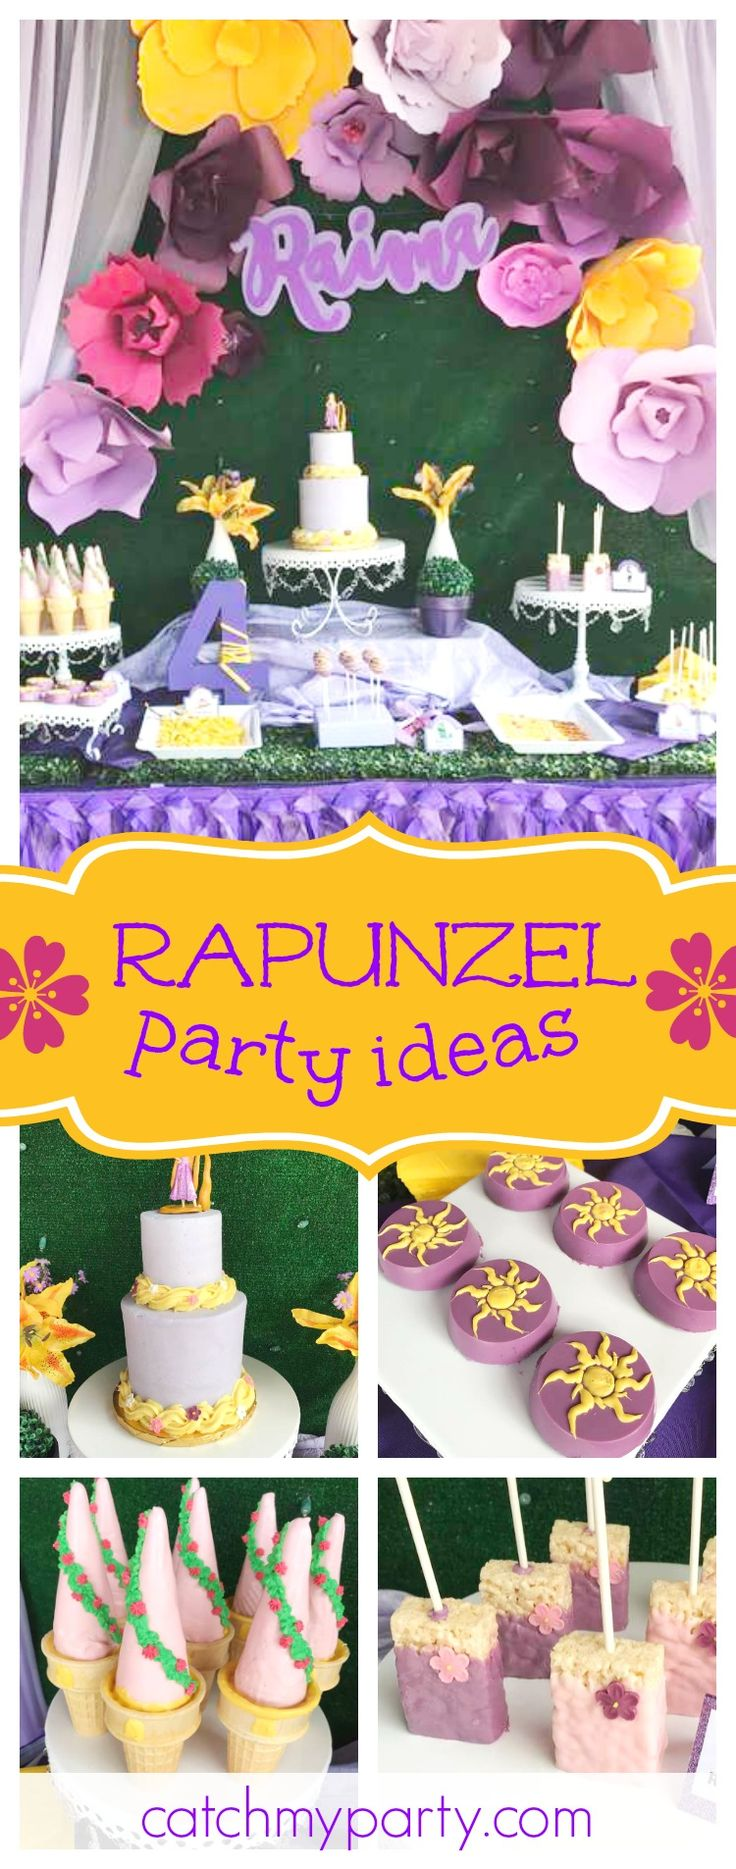 Take a look at this gorgeous Rapanzel birthday party! The dessert table is stunning!!See more party ideas and share yours at CatchMyParty.com #rapunzel #princess